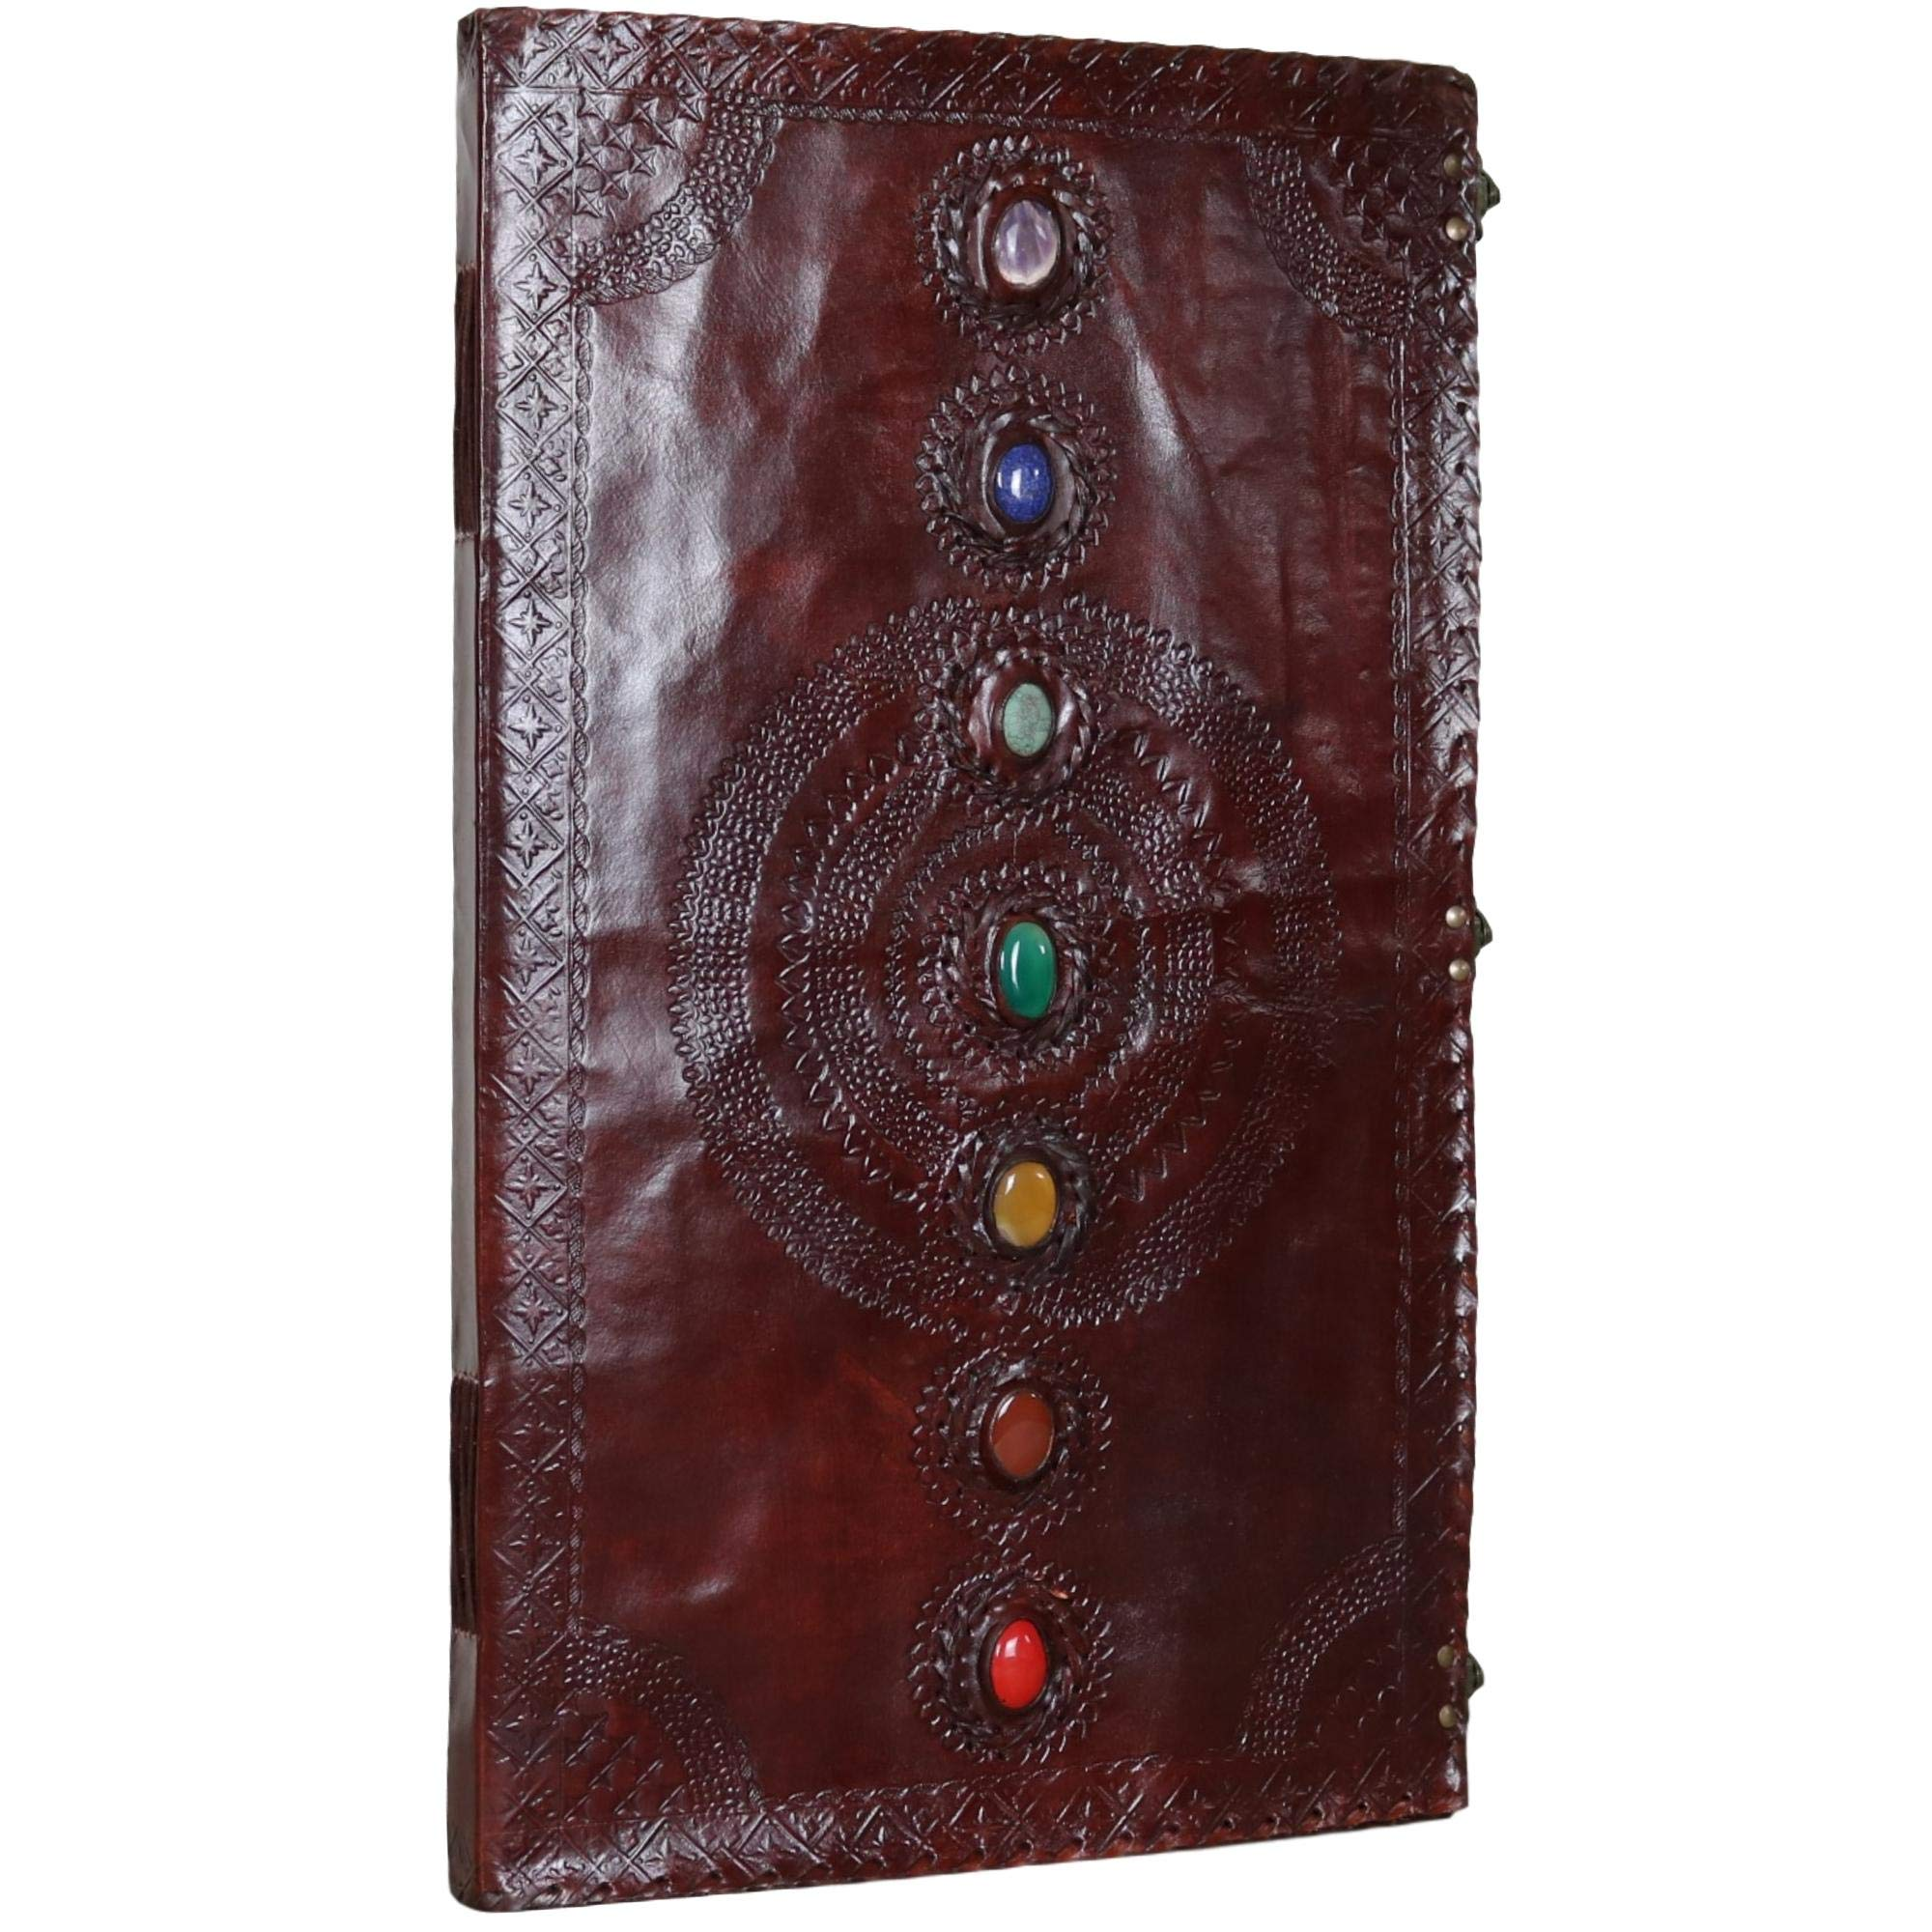 Seven Stone Leather Journal Handmade Notebook Unlined Blank 240 Pages 13 1/2 X 22 inches